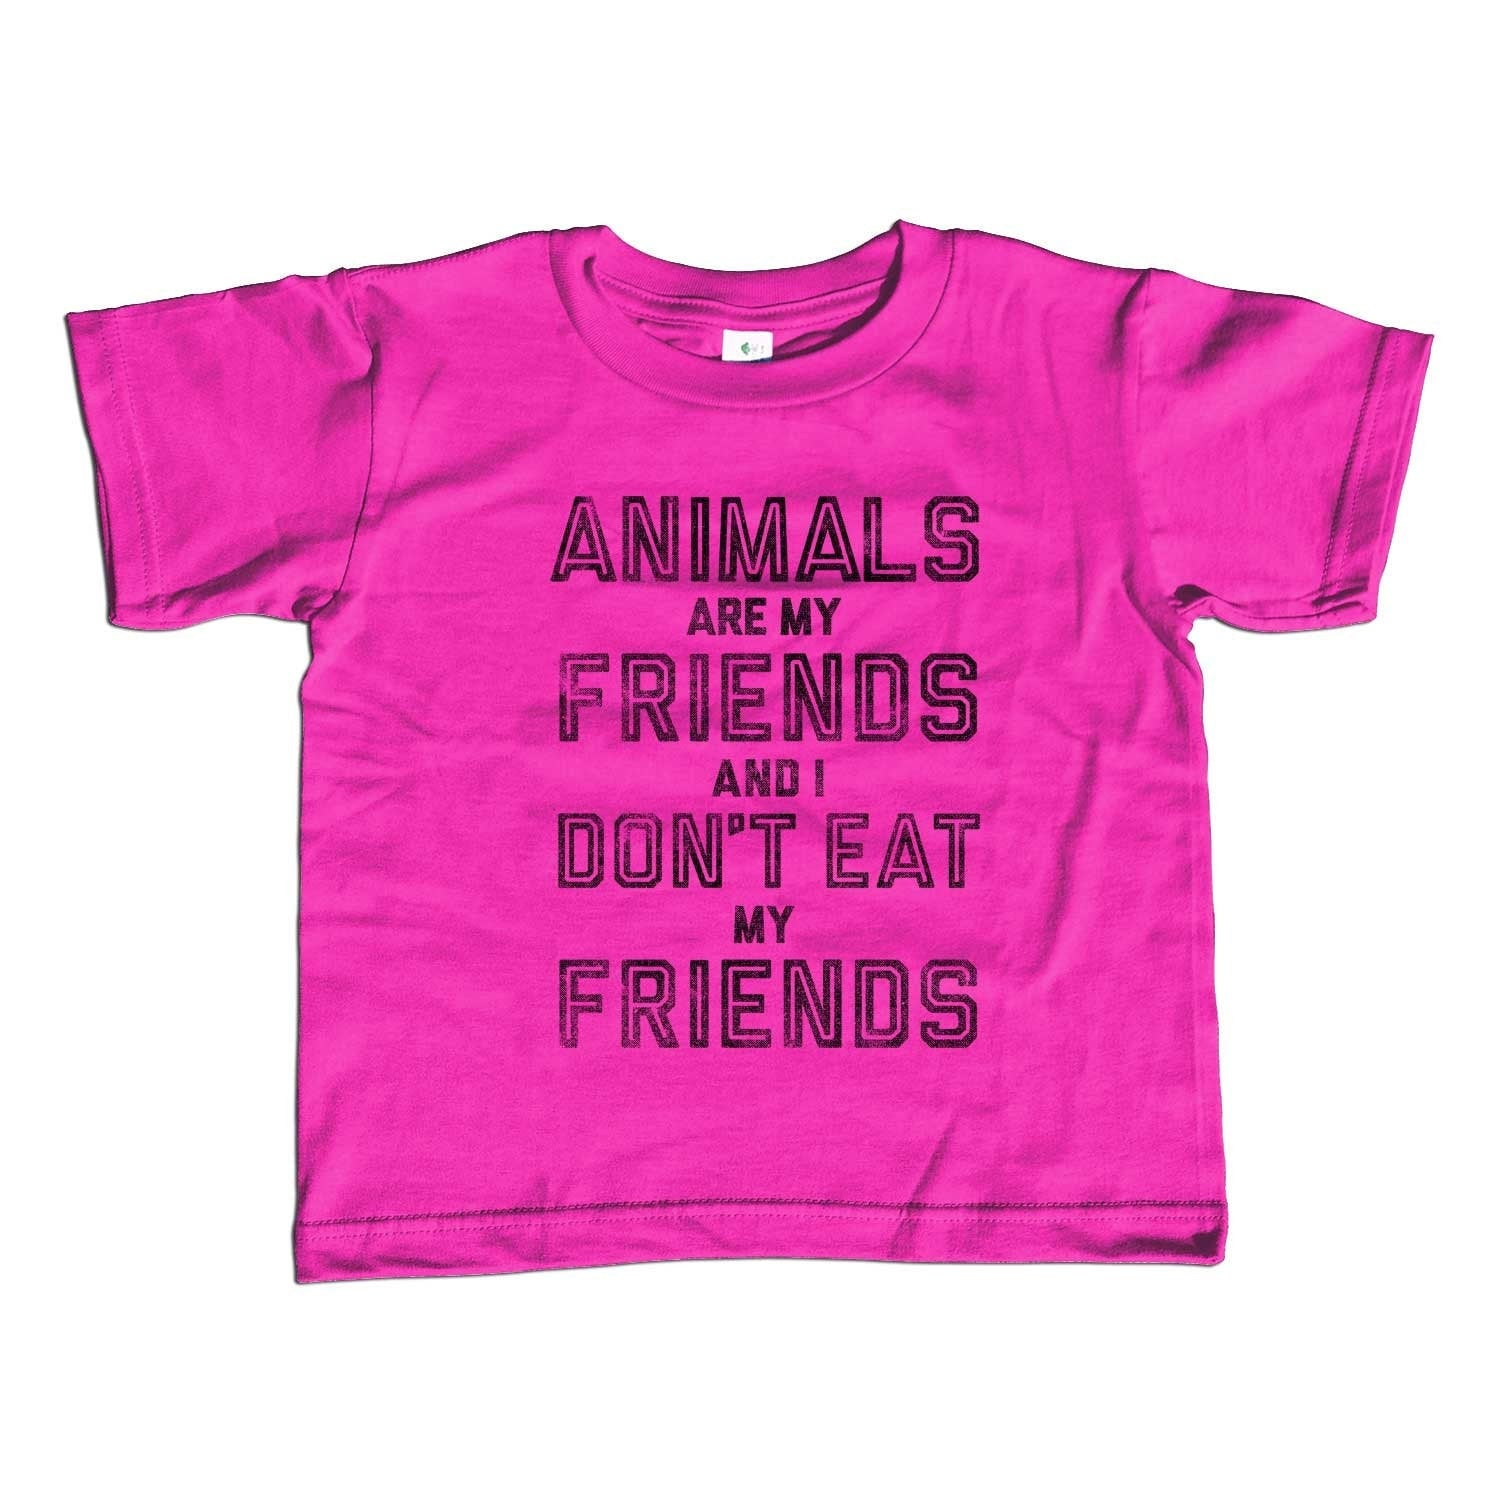 a8e5a0d6 Girl's Animals Are My Friends and I Don't Eat My Friends T-Shirt - Uni –  Boredwalk